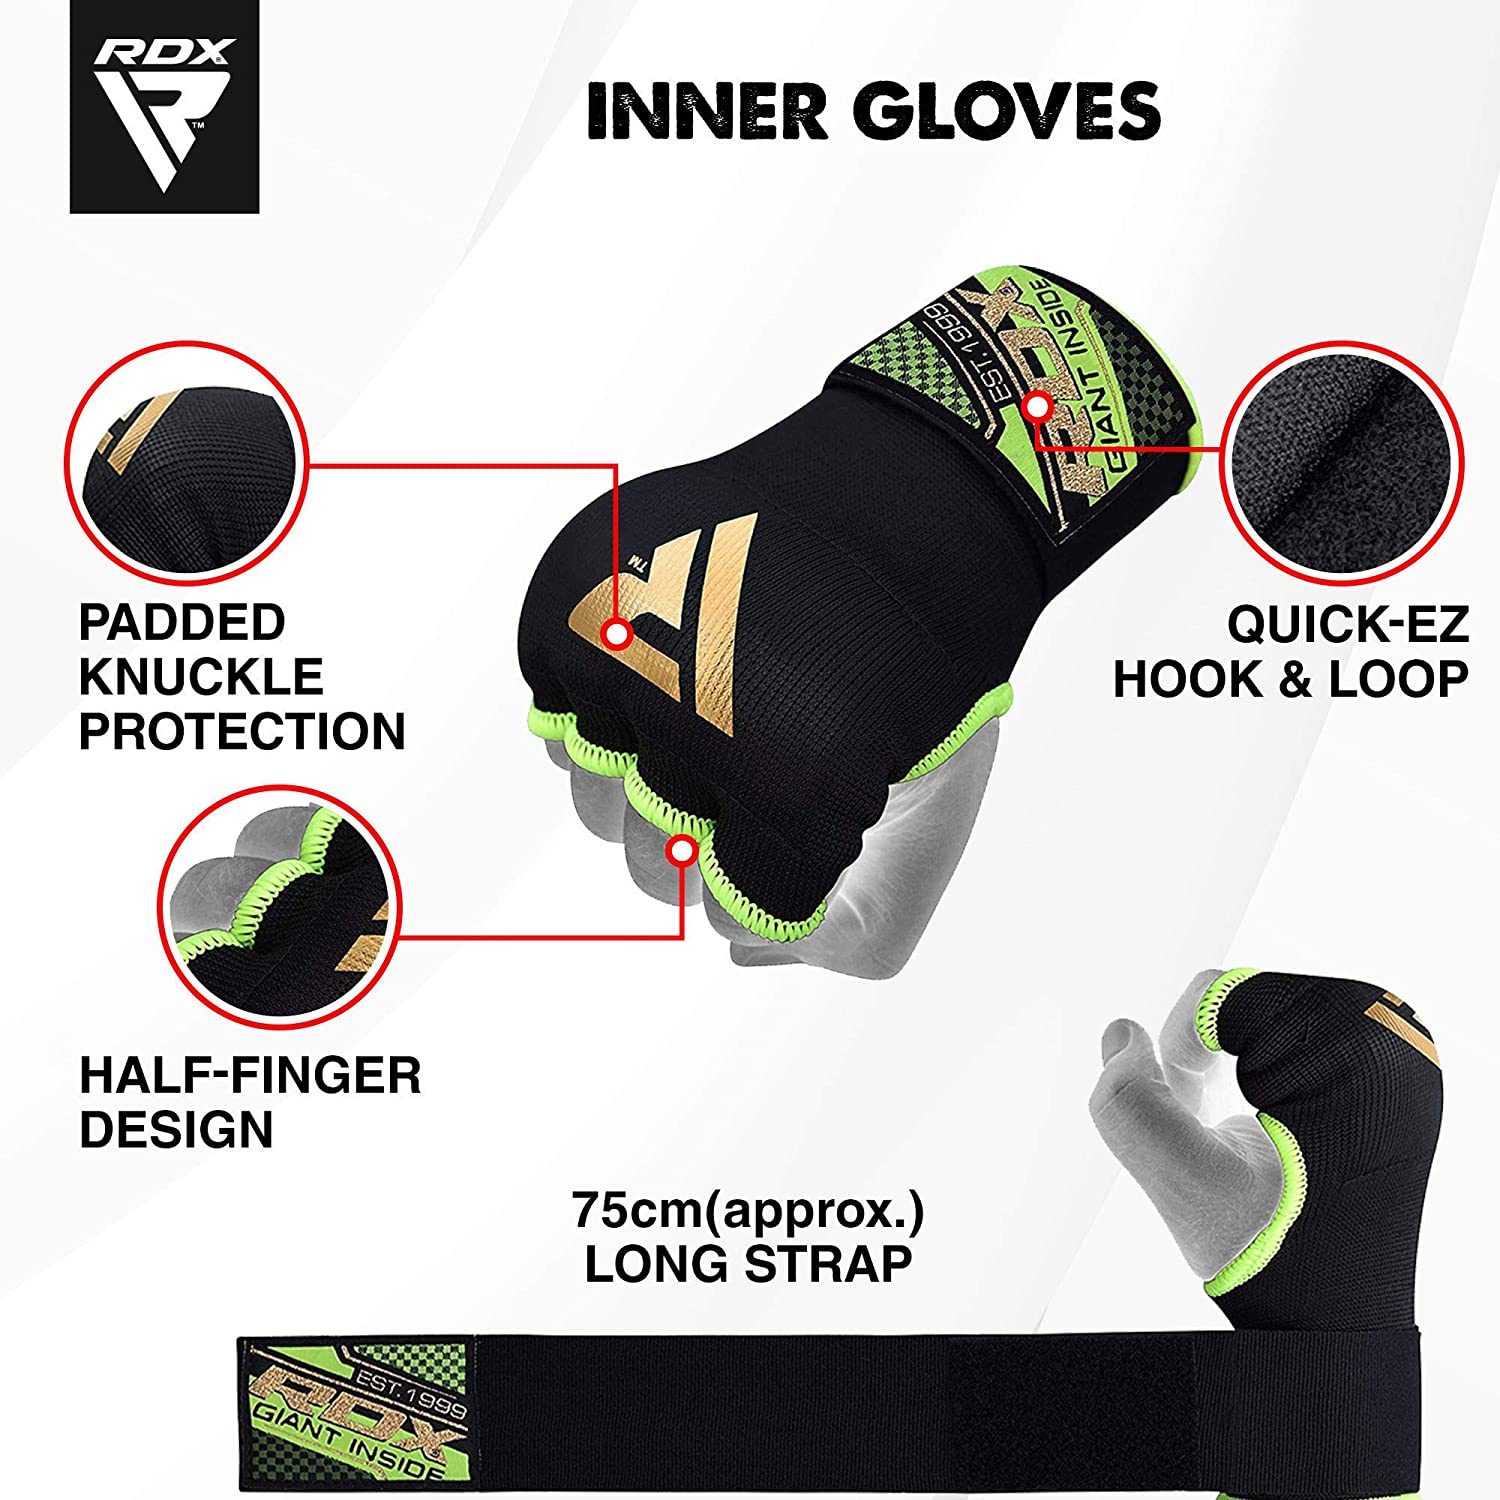 Fist Protector Kickboxing /& Martial Arts Training Great for MMA Quick Long Wrist Support Muay Thai Elasticated Padded Bandages under Mitts RDX Boxing Hand Wraps Inner Gloves for Punching